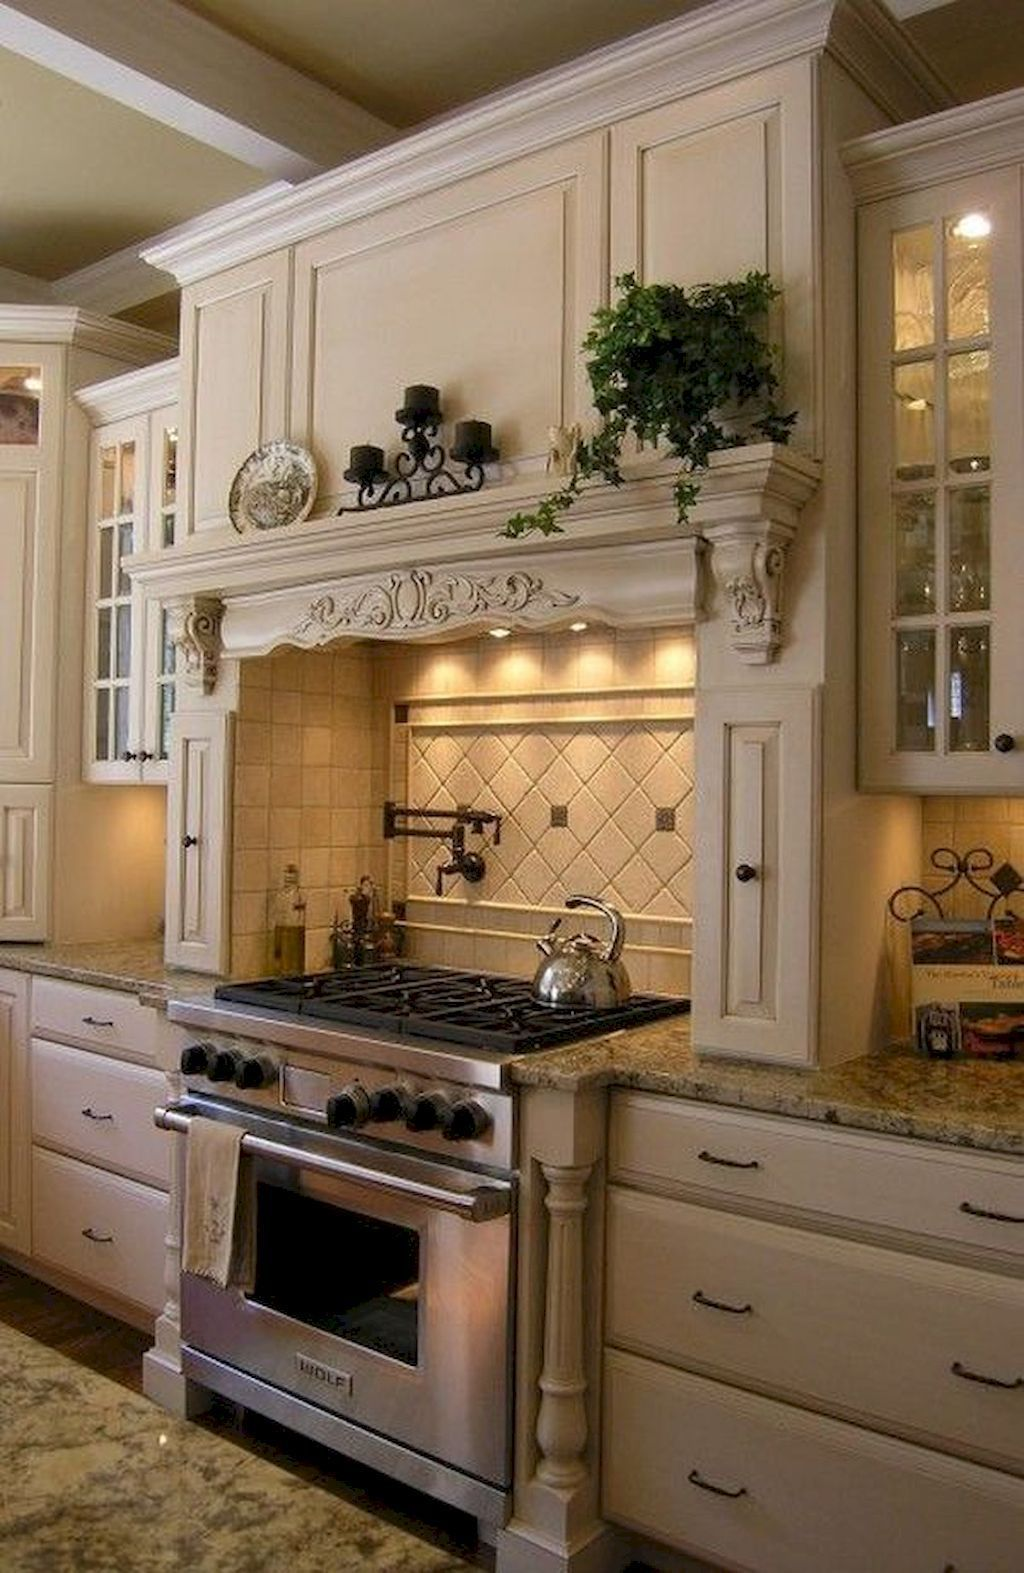 French country kitchen design ideas (23